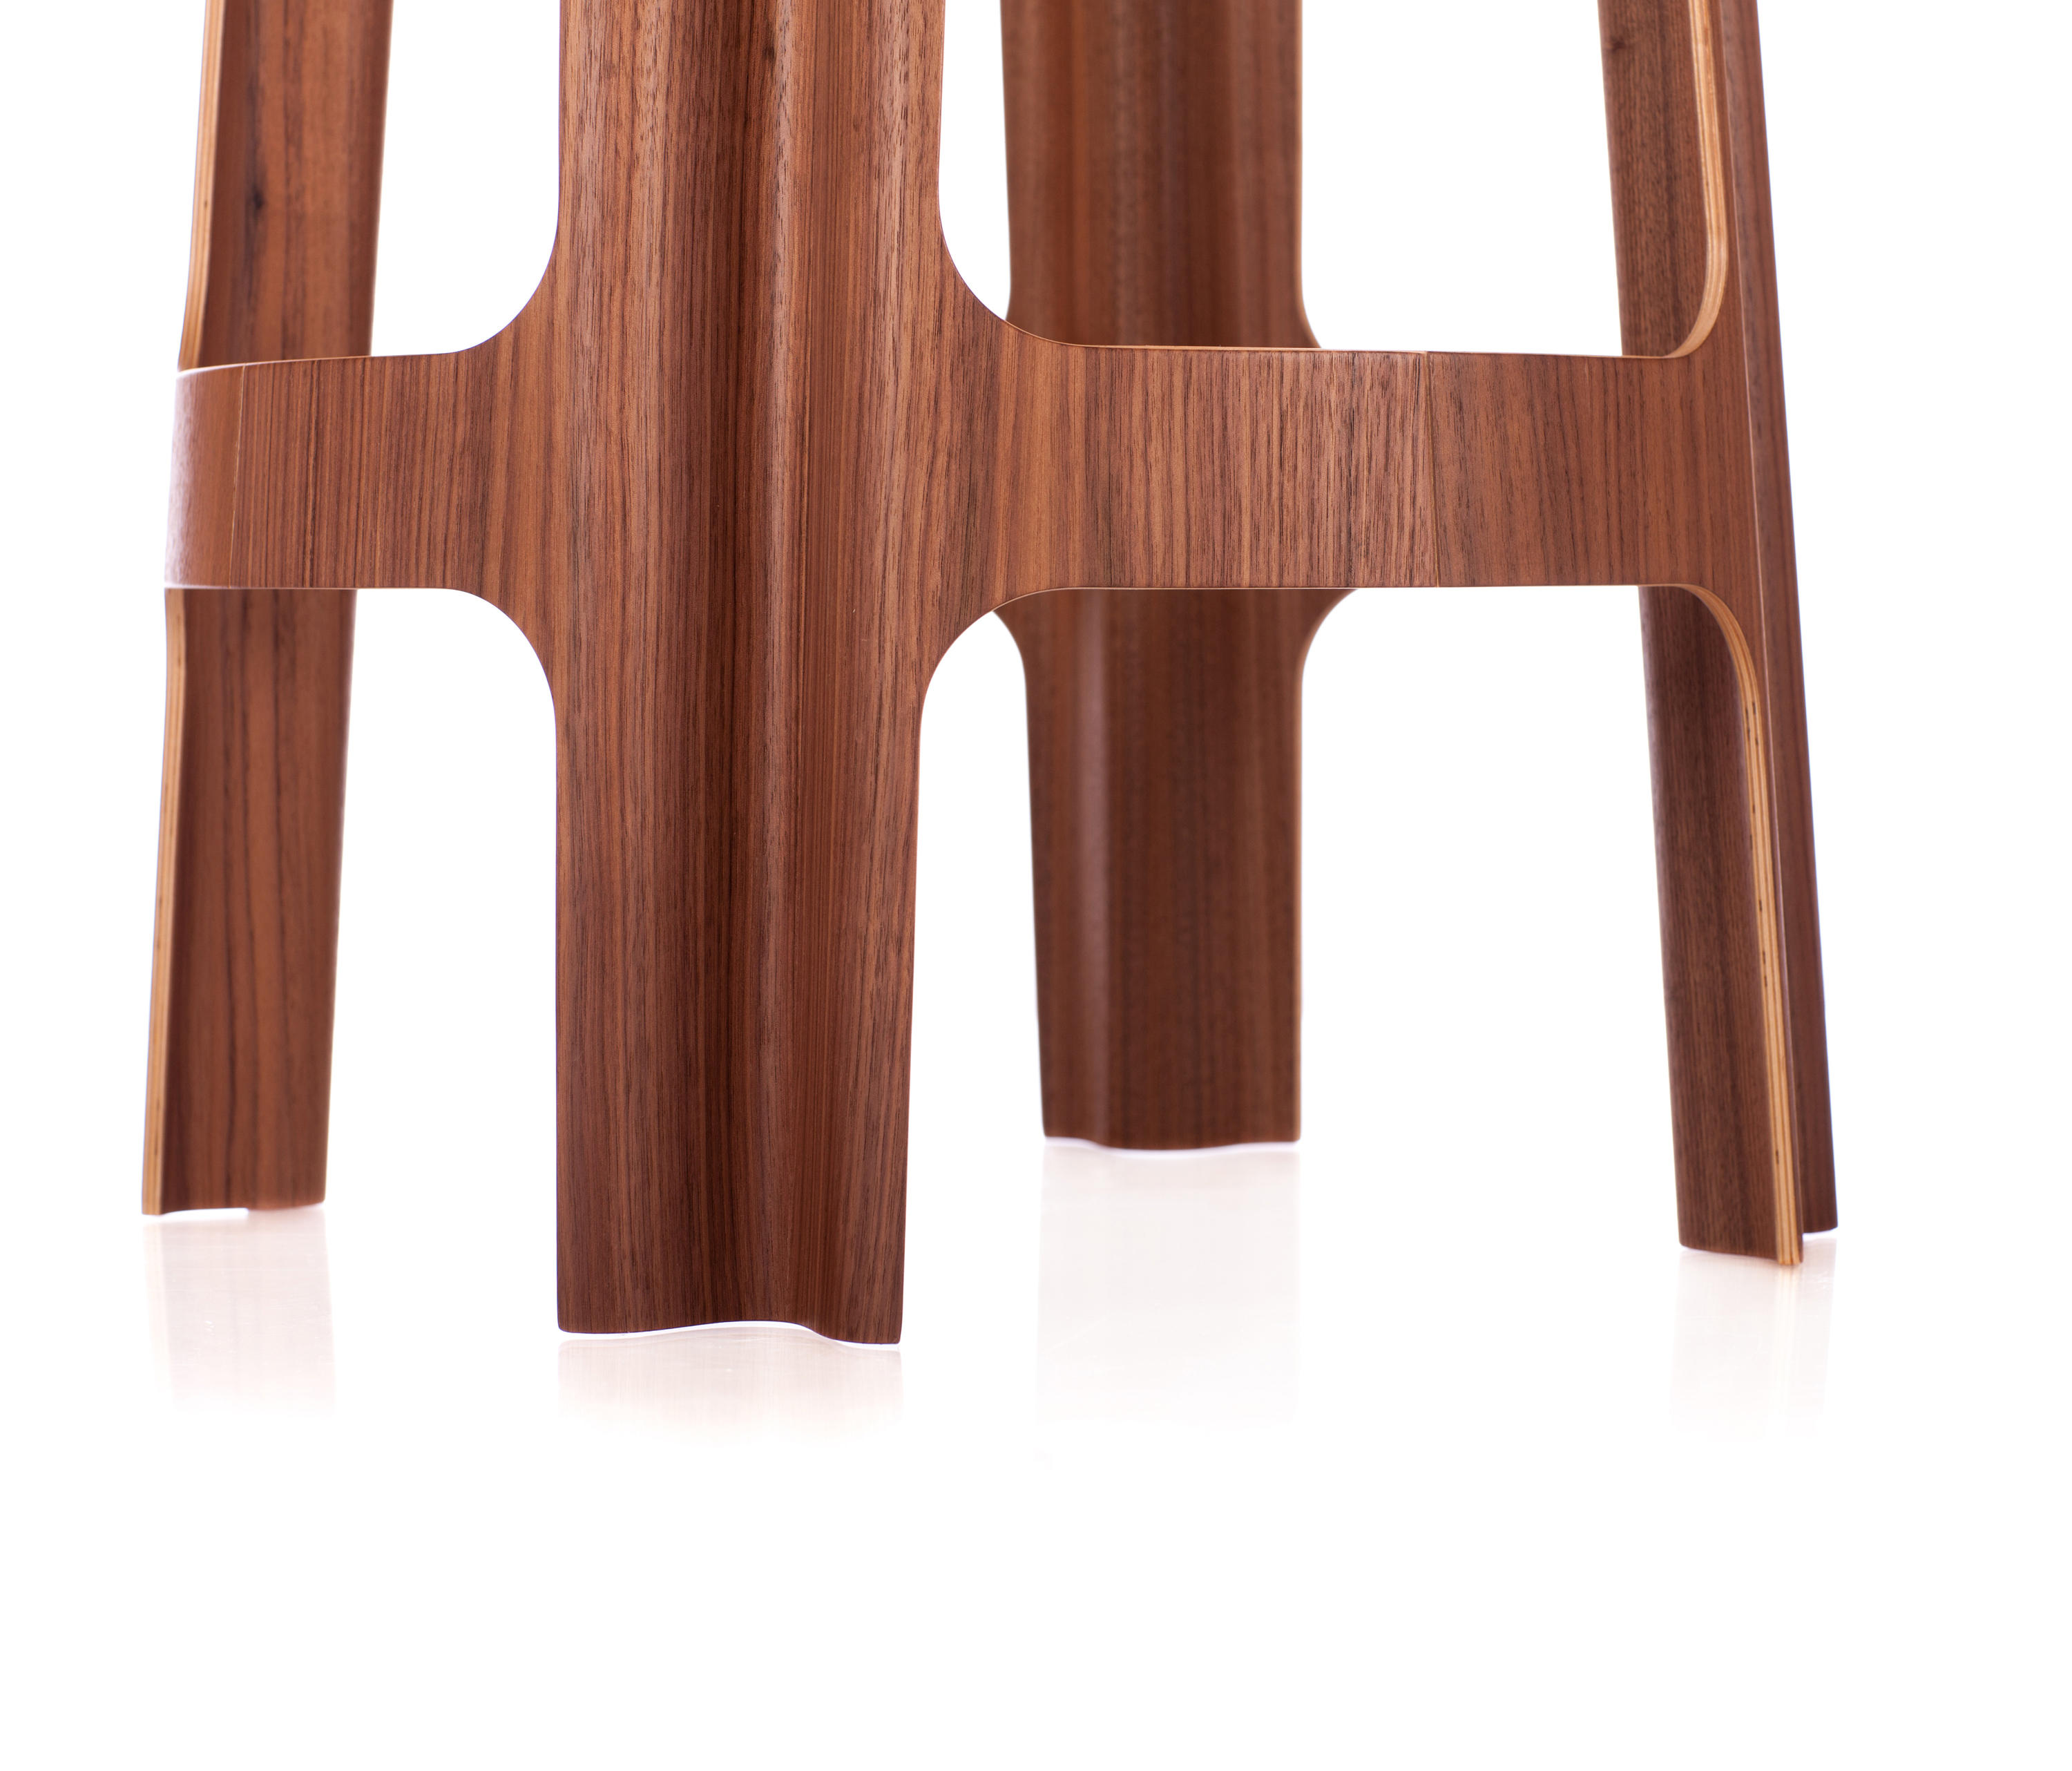 bloom bar low  bar stools from riga chair  architonic -  bloom bar low by riga chair